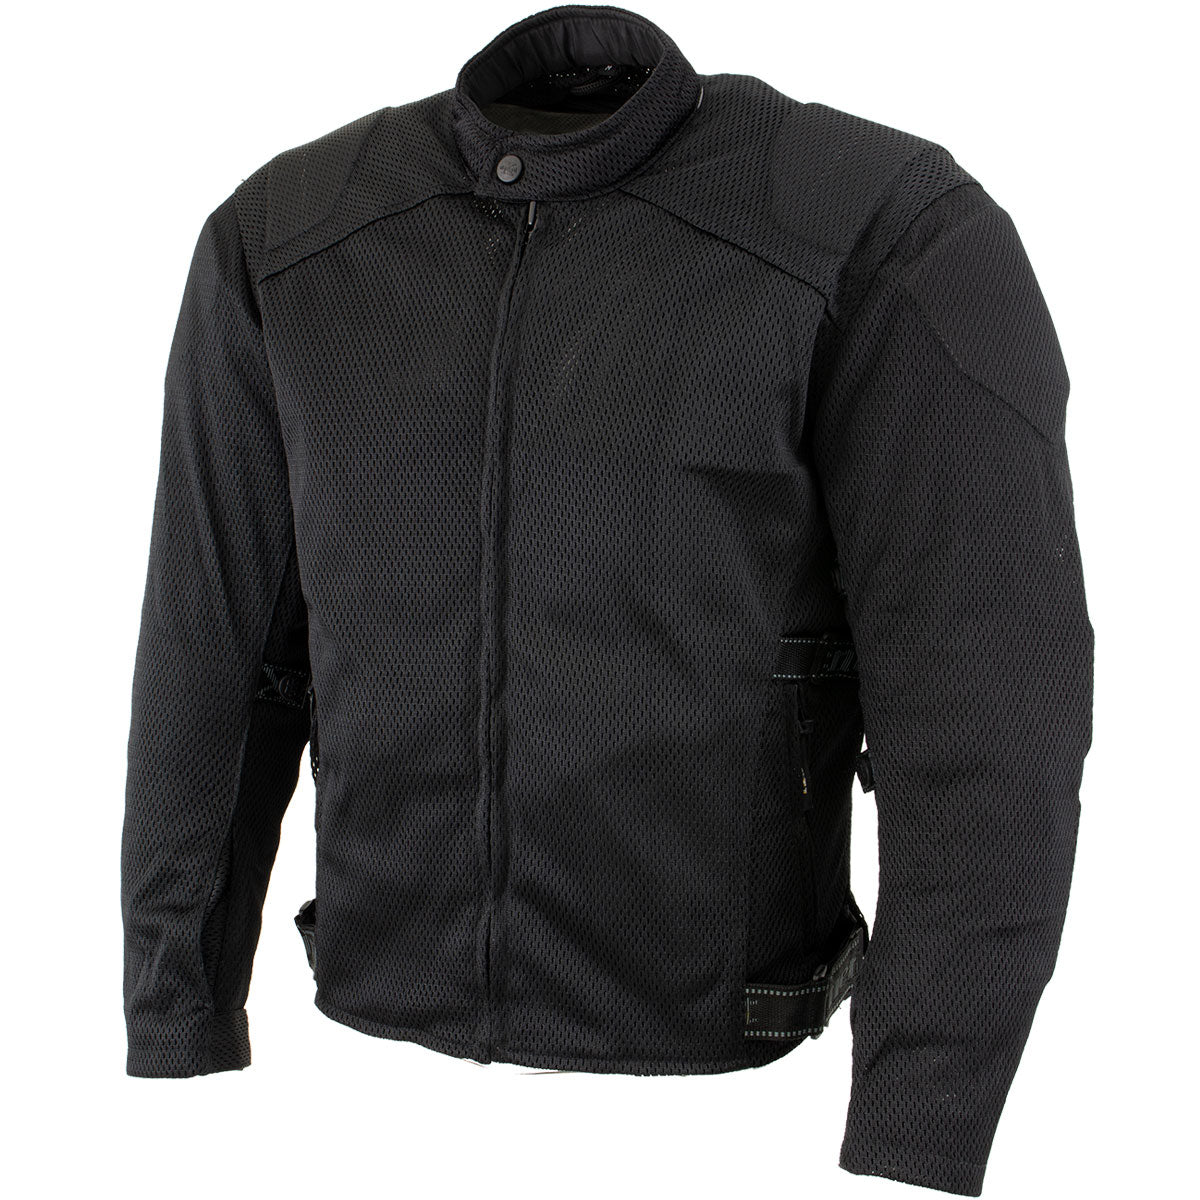 Xelement CF2157 'Caliber' Men's Black Mesh Motorcycle Jacket with